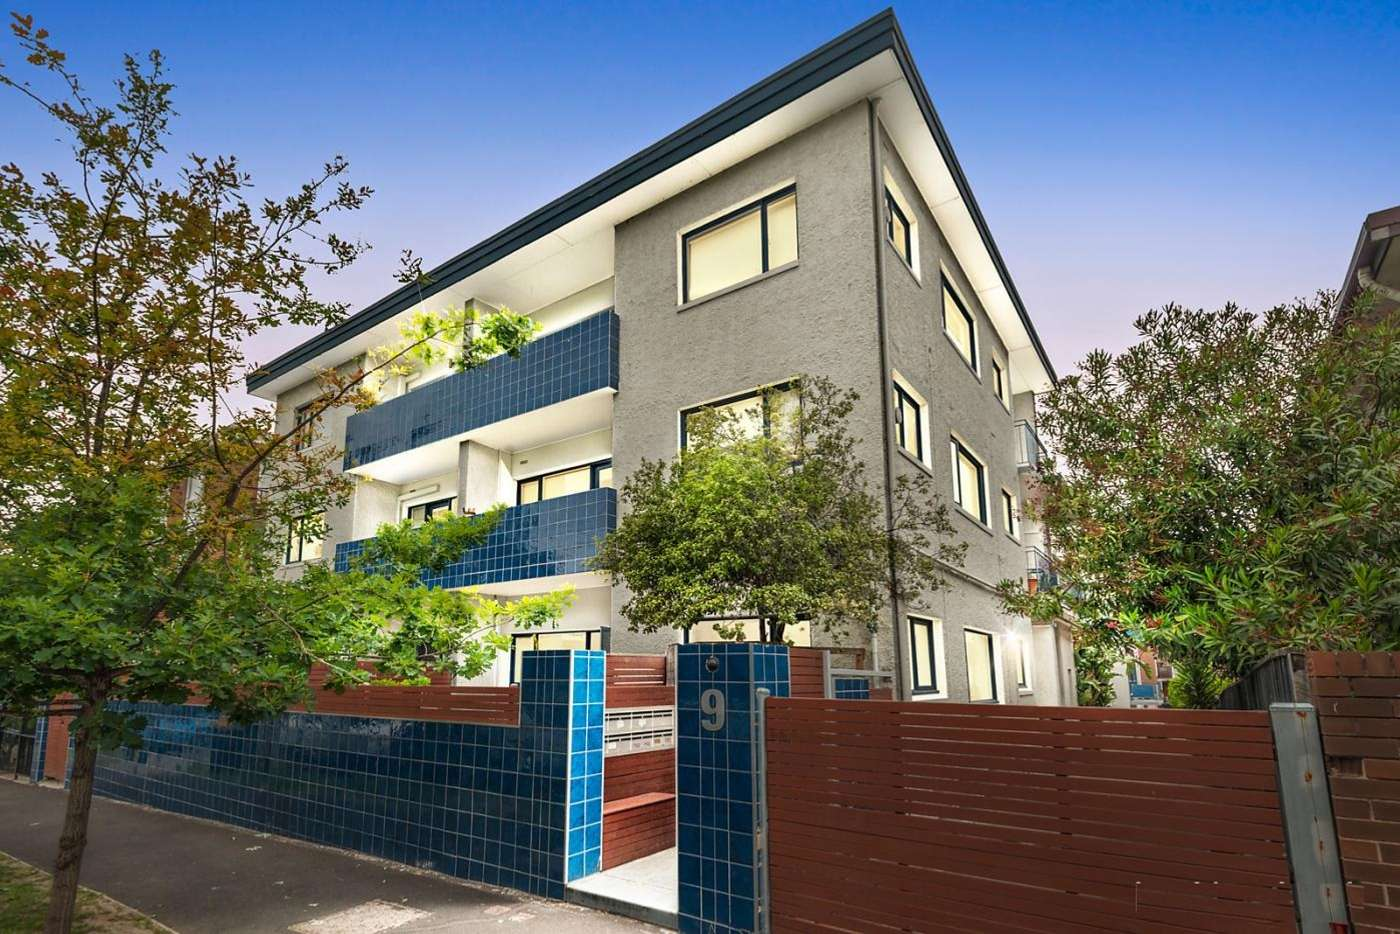 Main view of Homely apartment listing, 13/9 Herbert Street, St Kilda VIC 3182